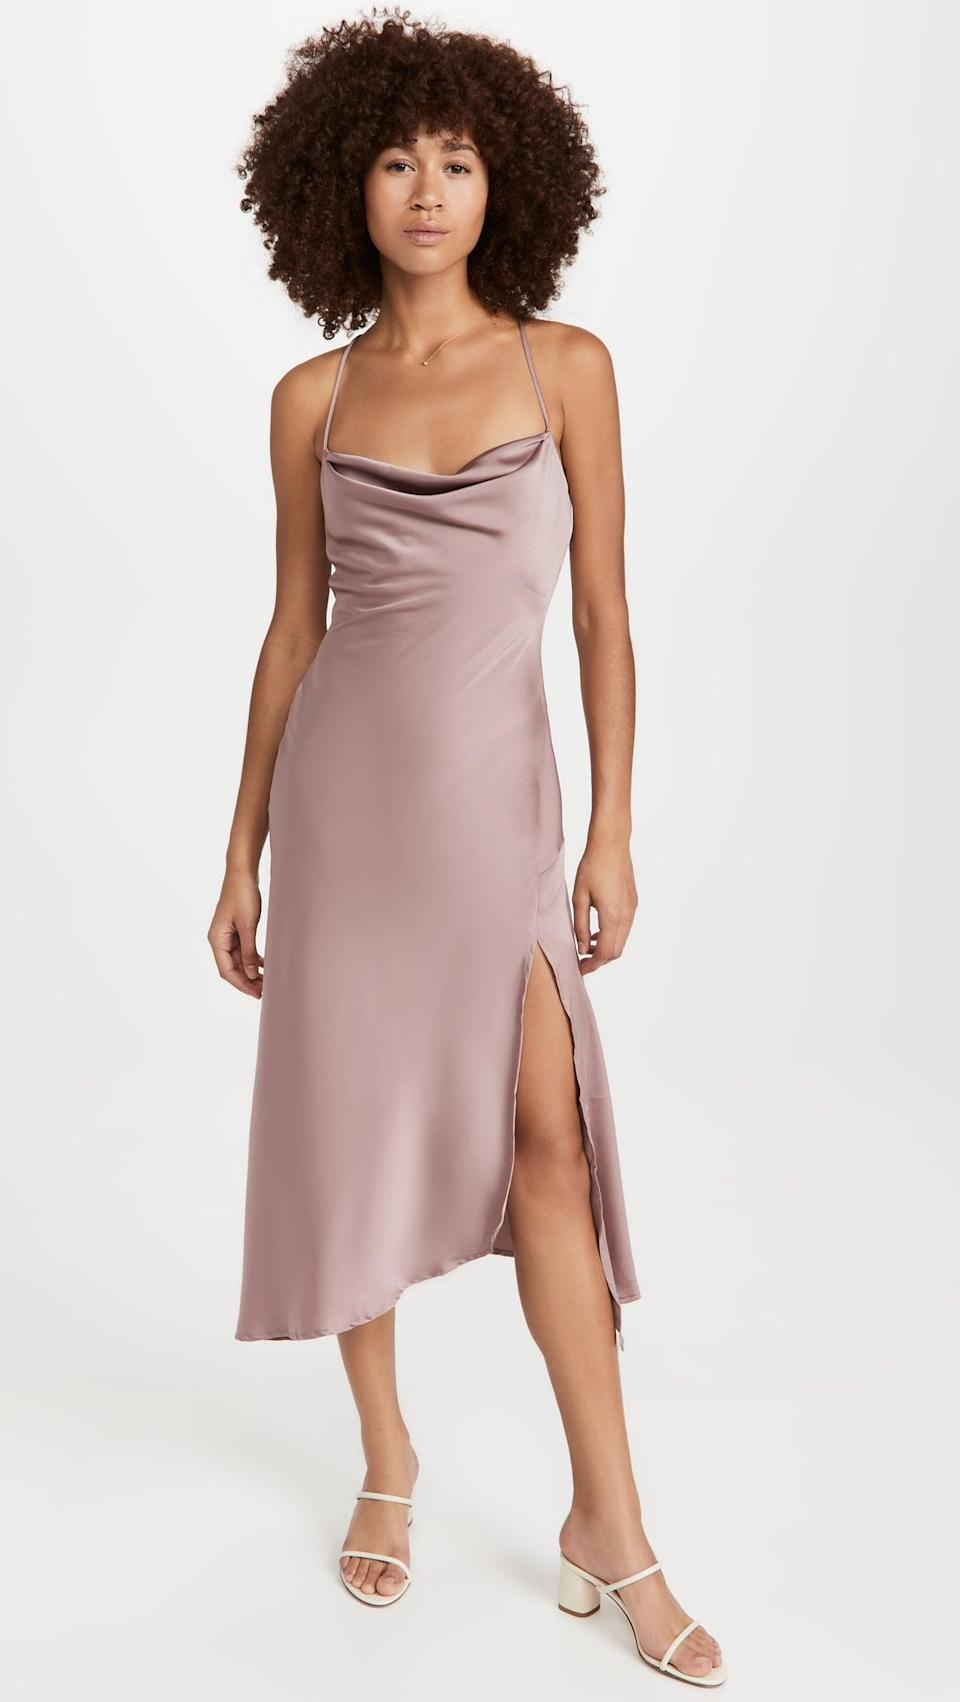 <p>Looking for a cute dress that won't break the bank? This <span>ASTR the Label Gaia Dress</span> ($98) is it.</p>